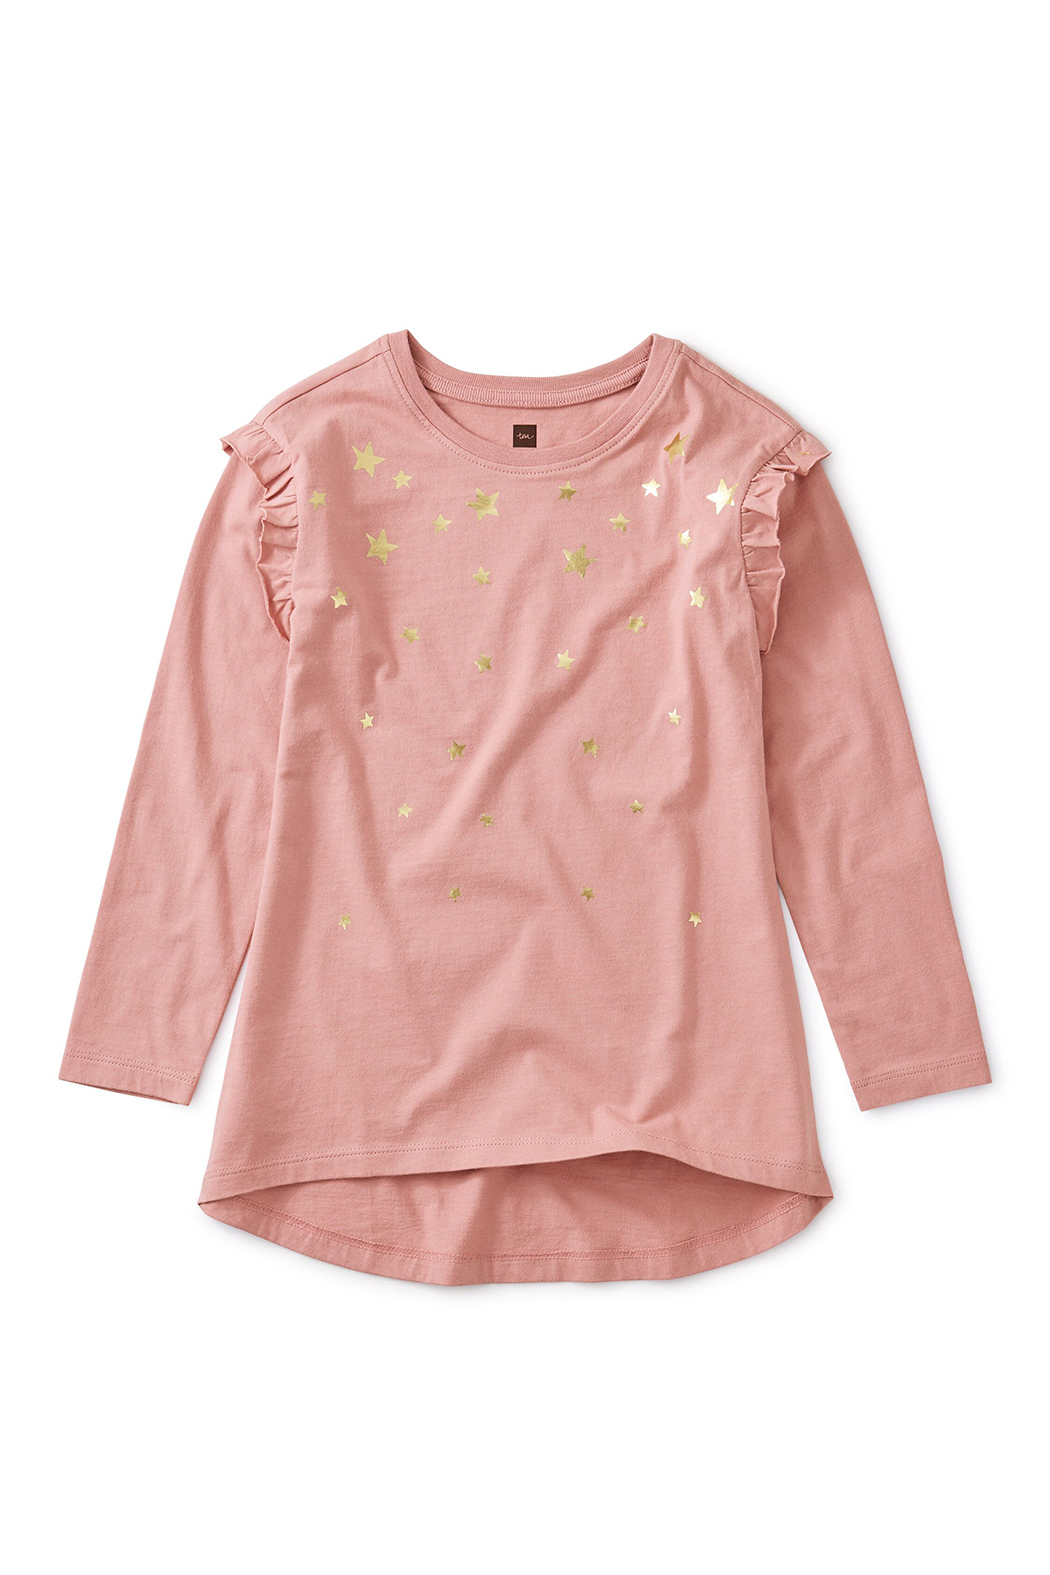 Tea Collection Metallic Star Tunic Top - Front Cropped Image